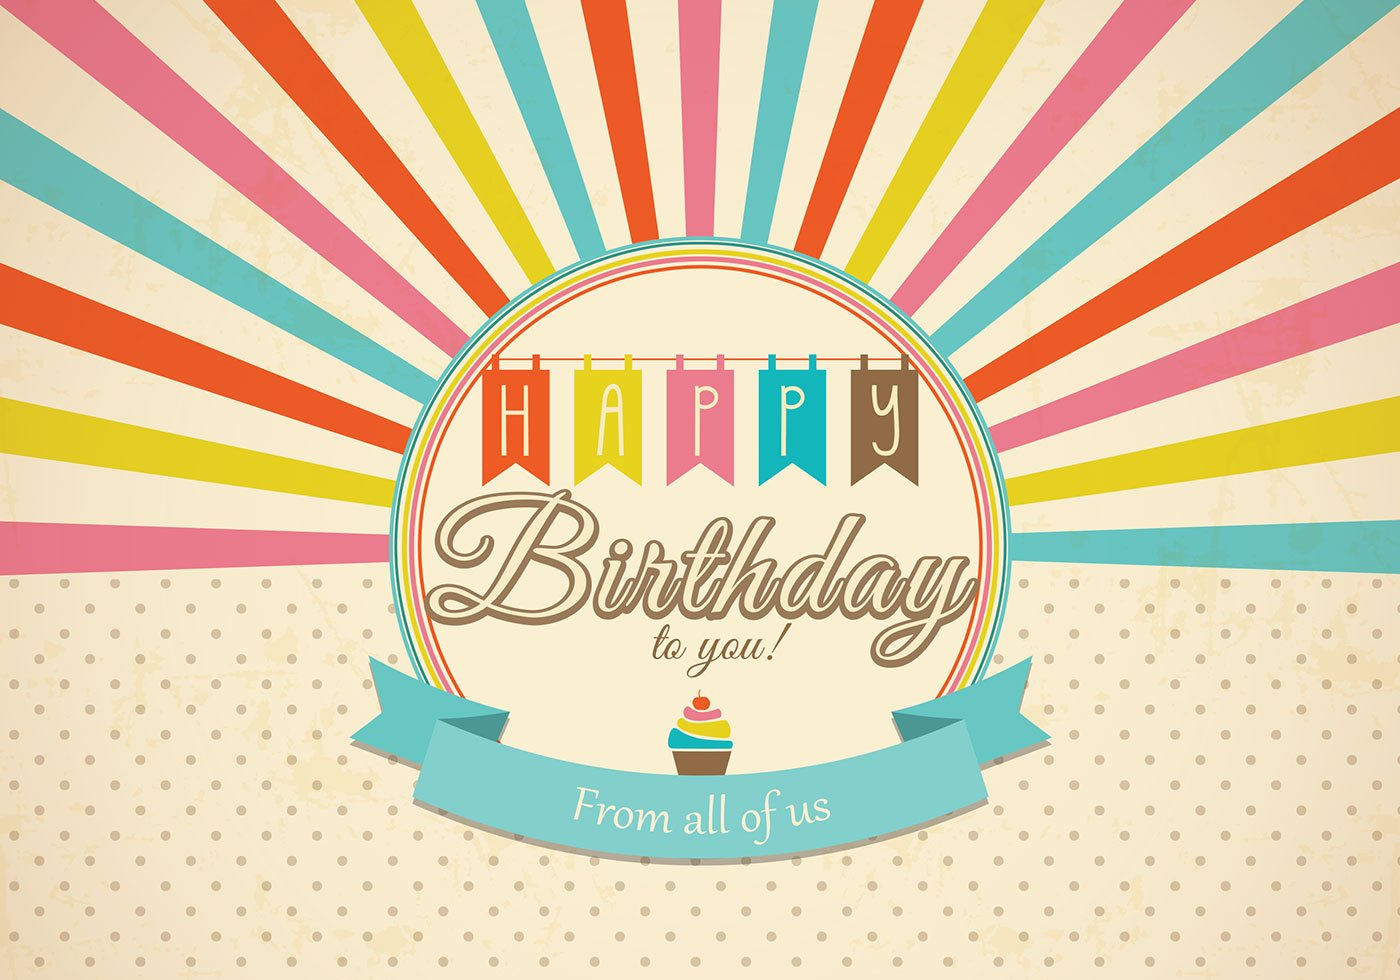 Retro happy birthday card psd free photoshop brushes at - Happy birthday card wallpaper ...